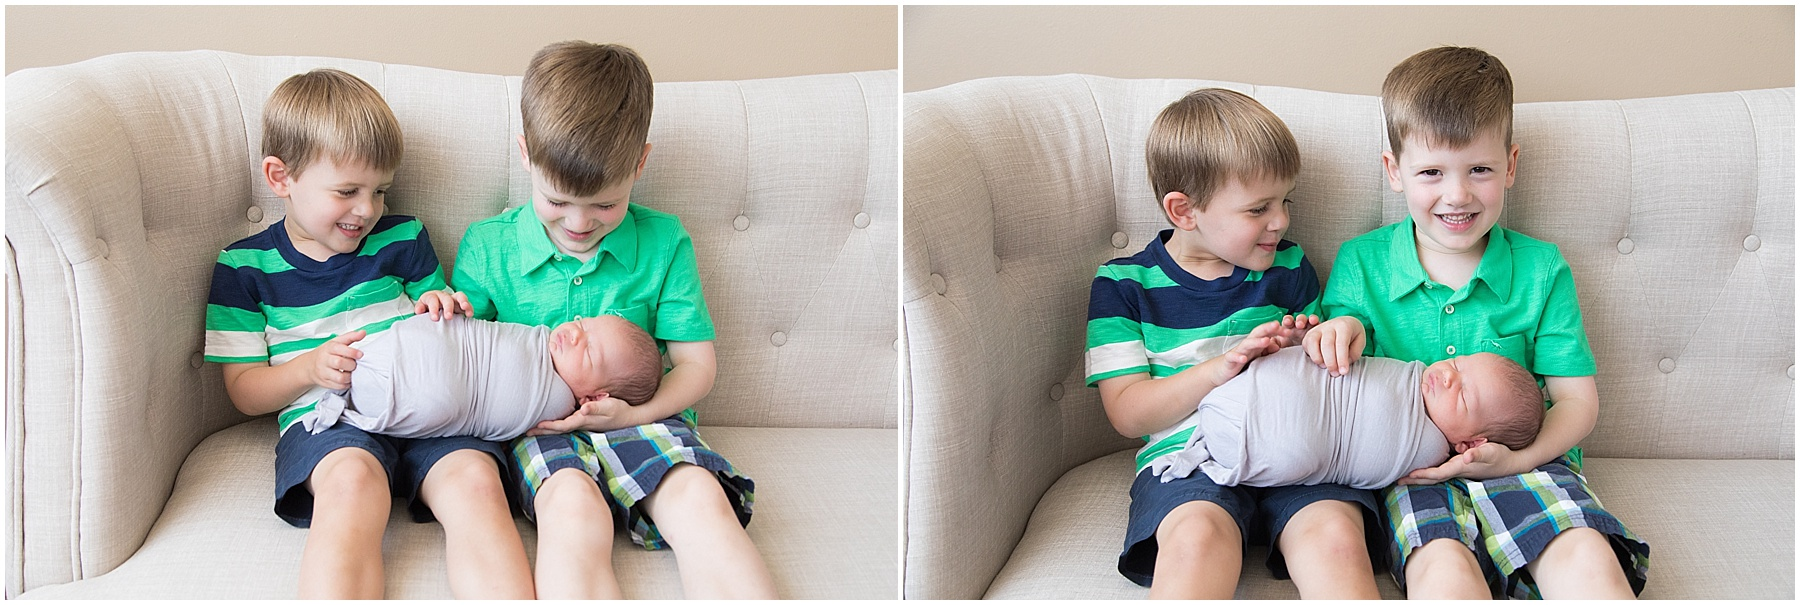 Big brothers looking at their new baby brother, Indianapolis Children Photography, Raindancer Studios